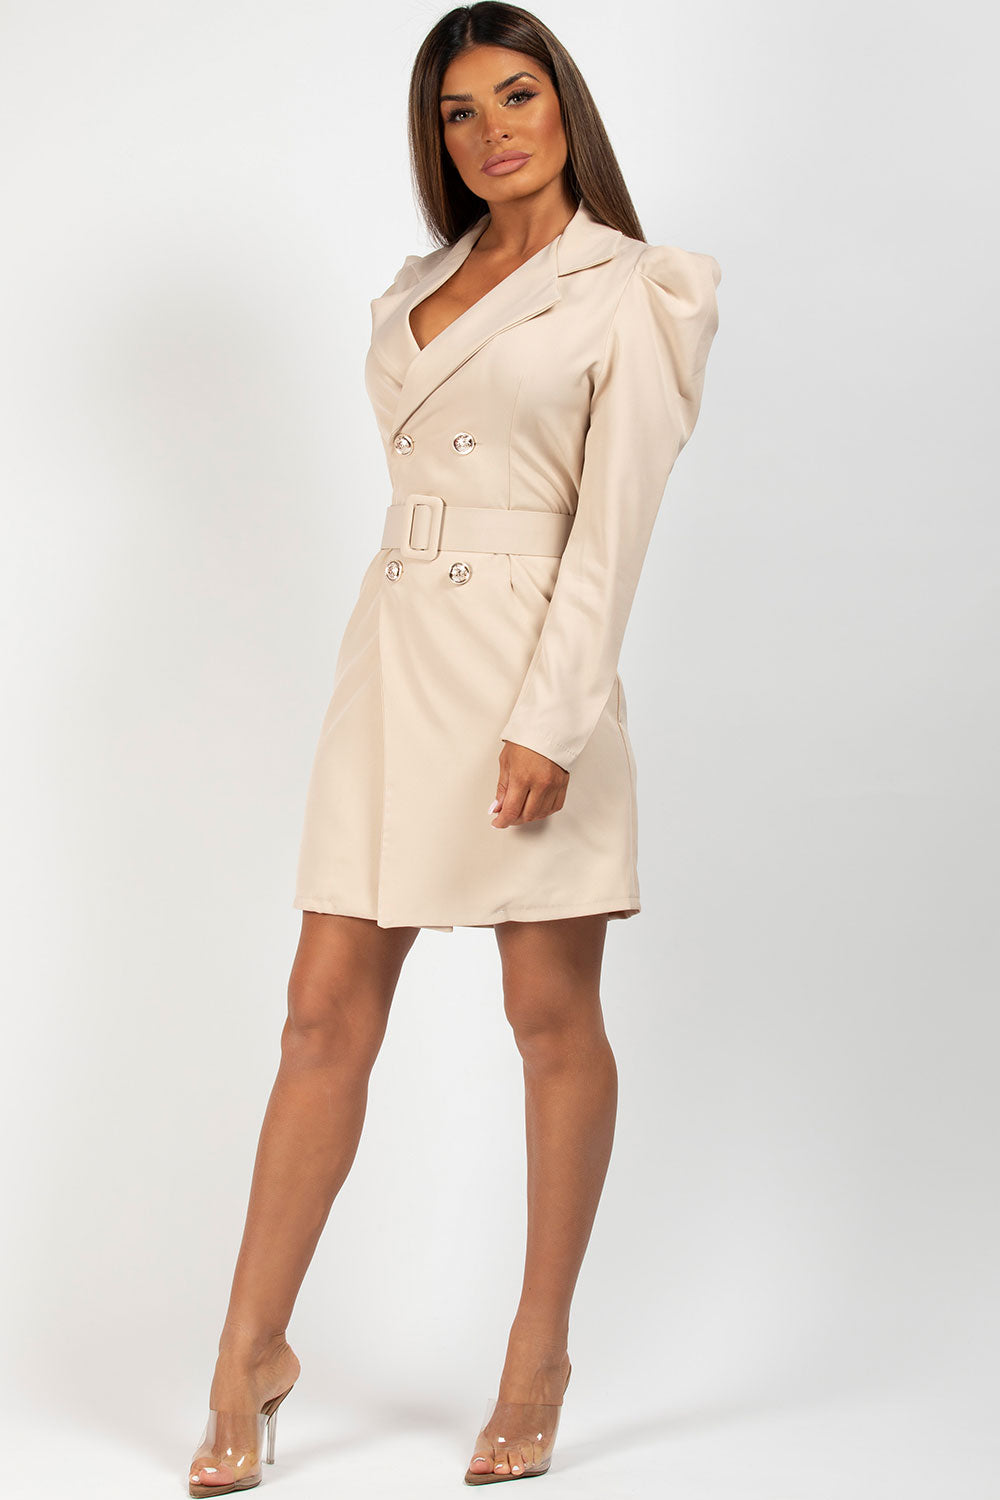 stone blazer dress with puffed sleeves